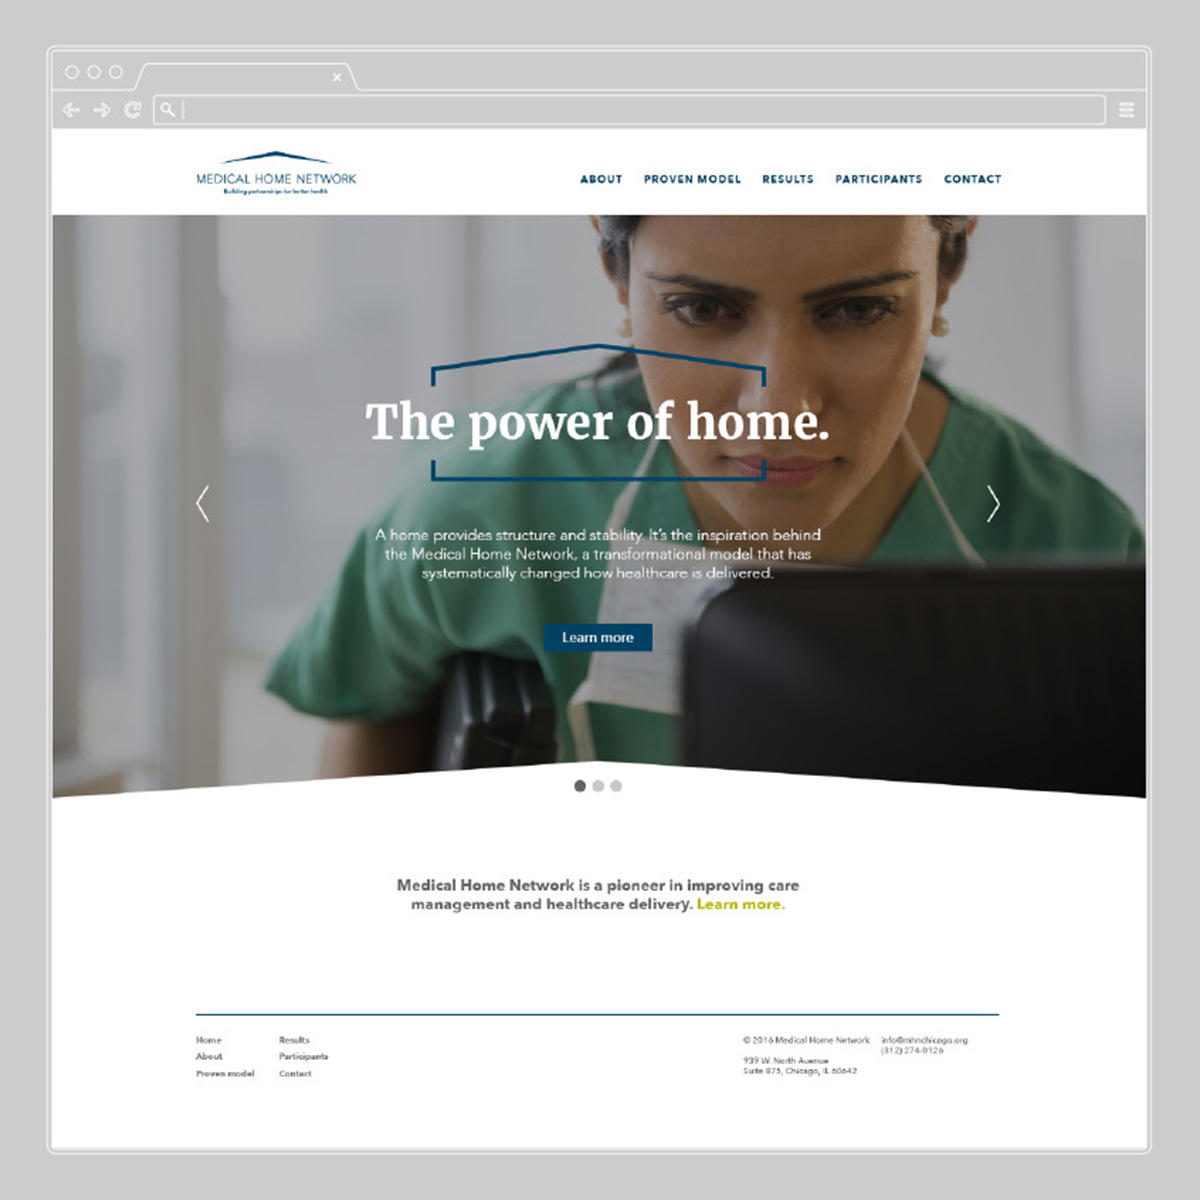 Medical Home Network